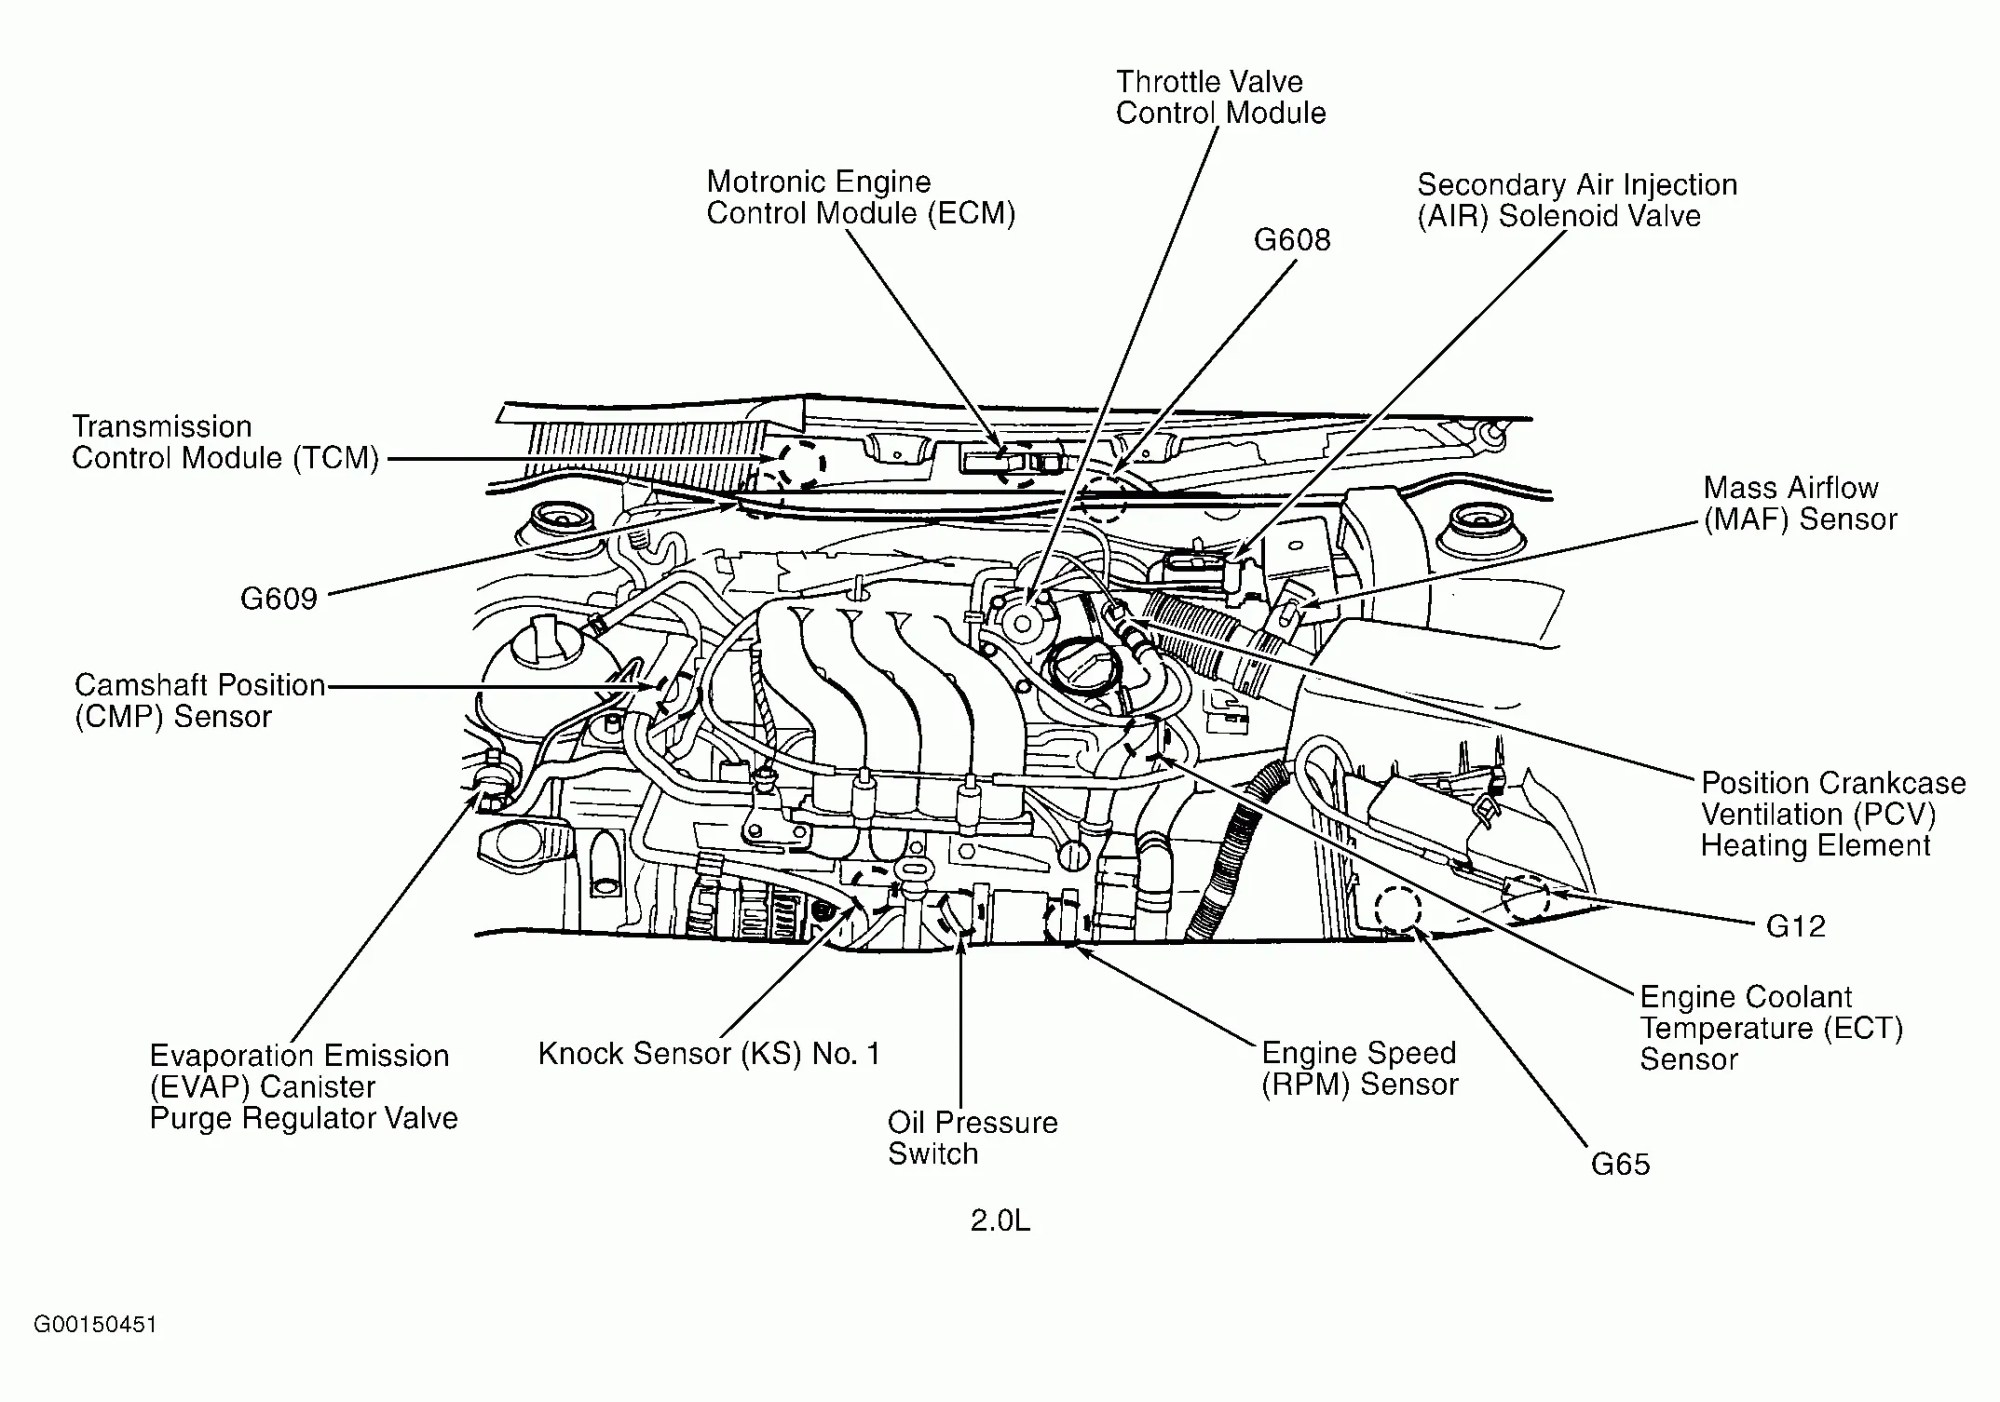 hight resolution of 2001 jetta vr6 engine diagram wiring diagram database 1999 vw jetta vr6 engine diagram 2001 jetta